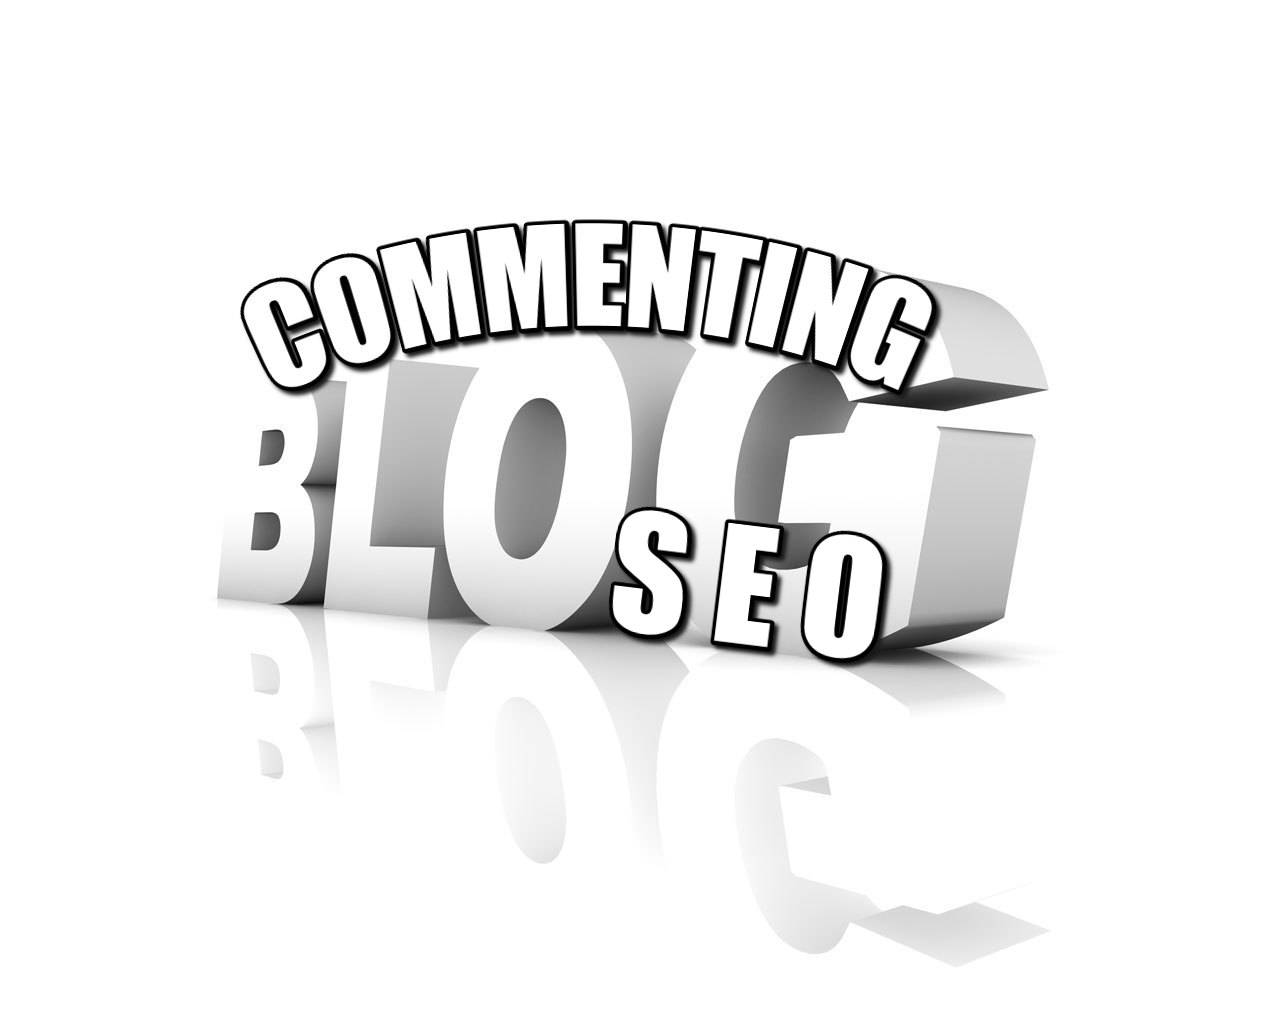 2000 blog comments increase your keyword ranking